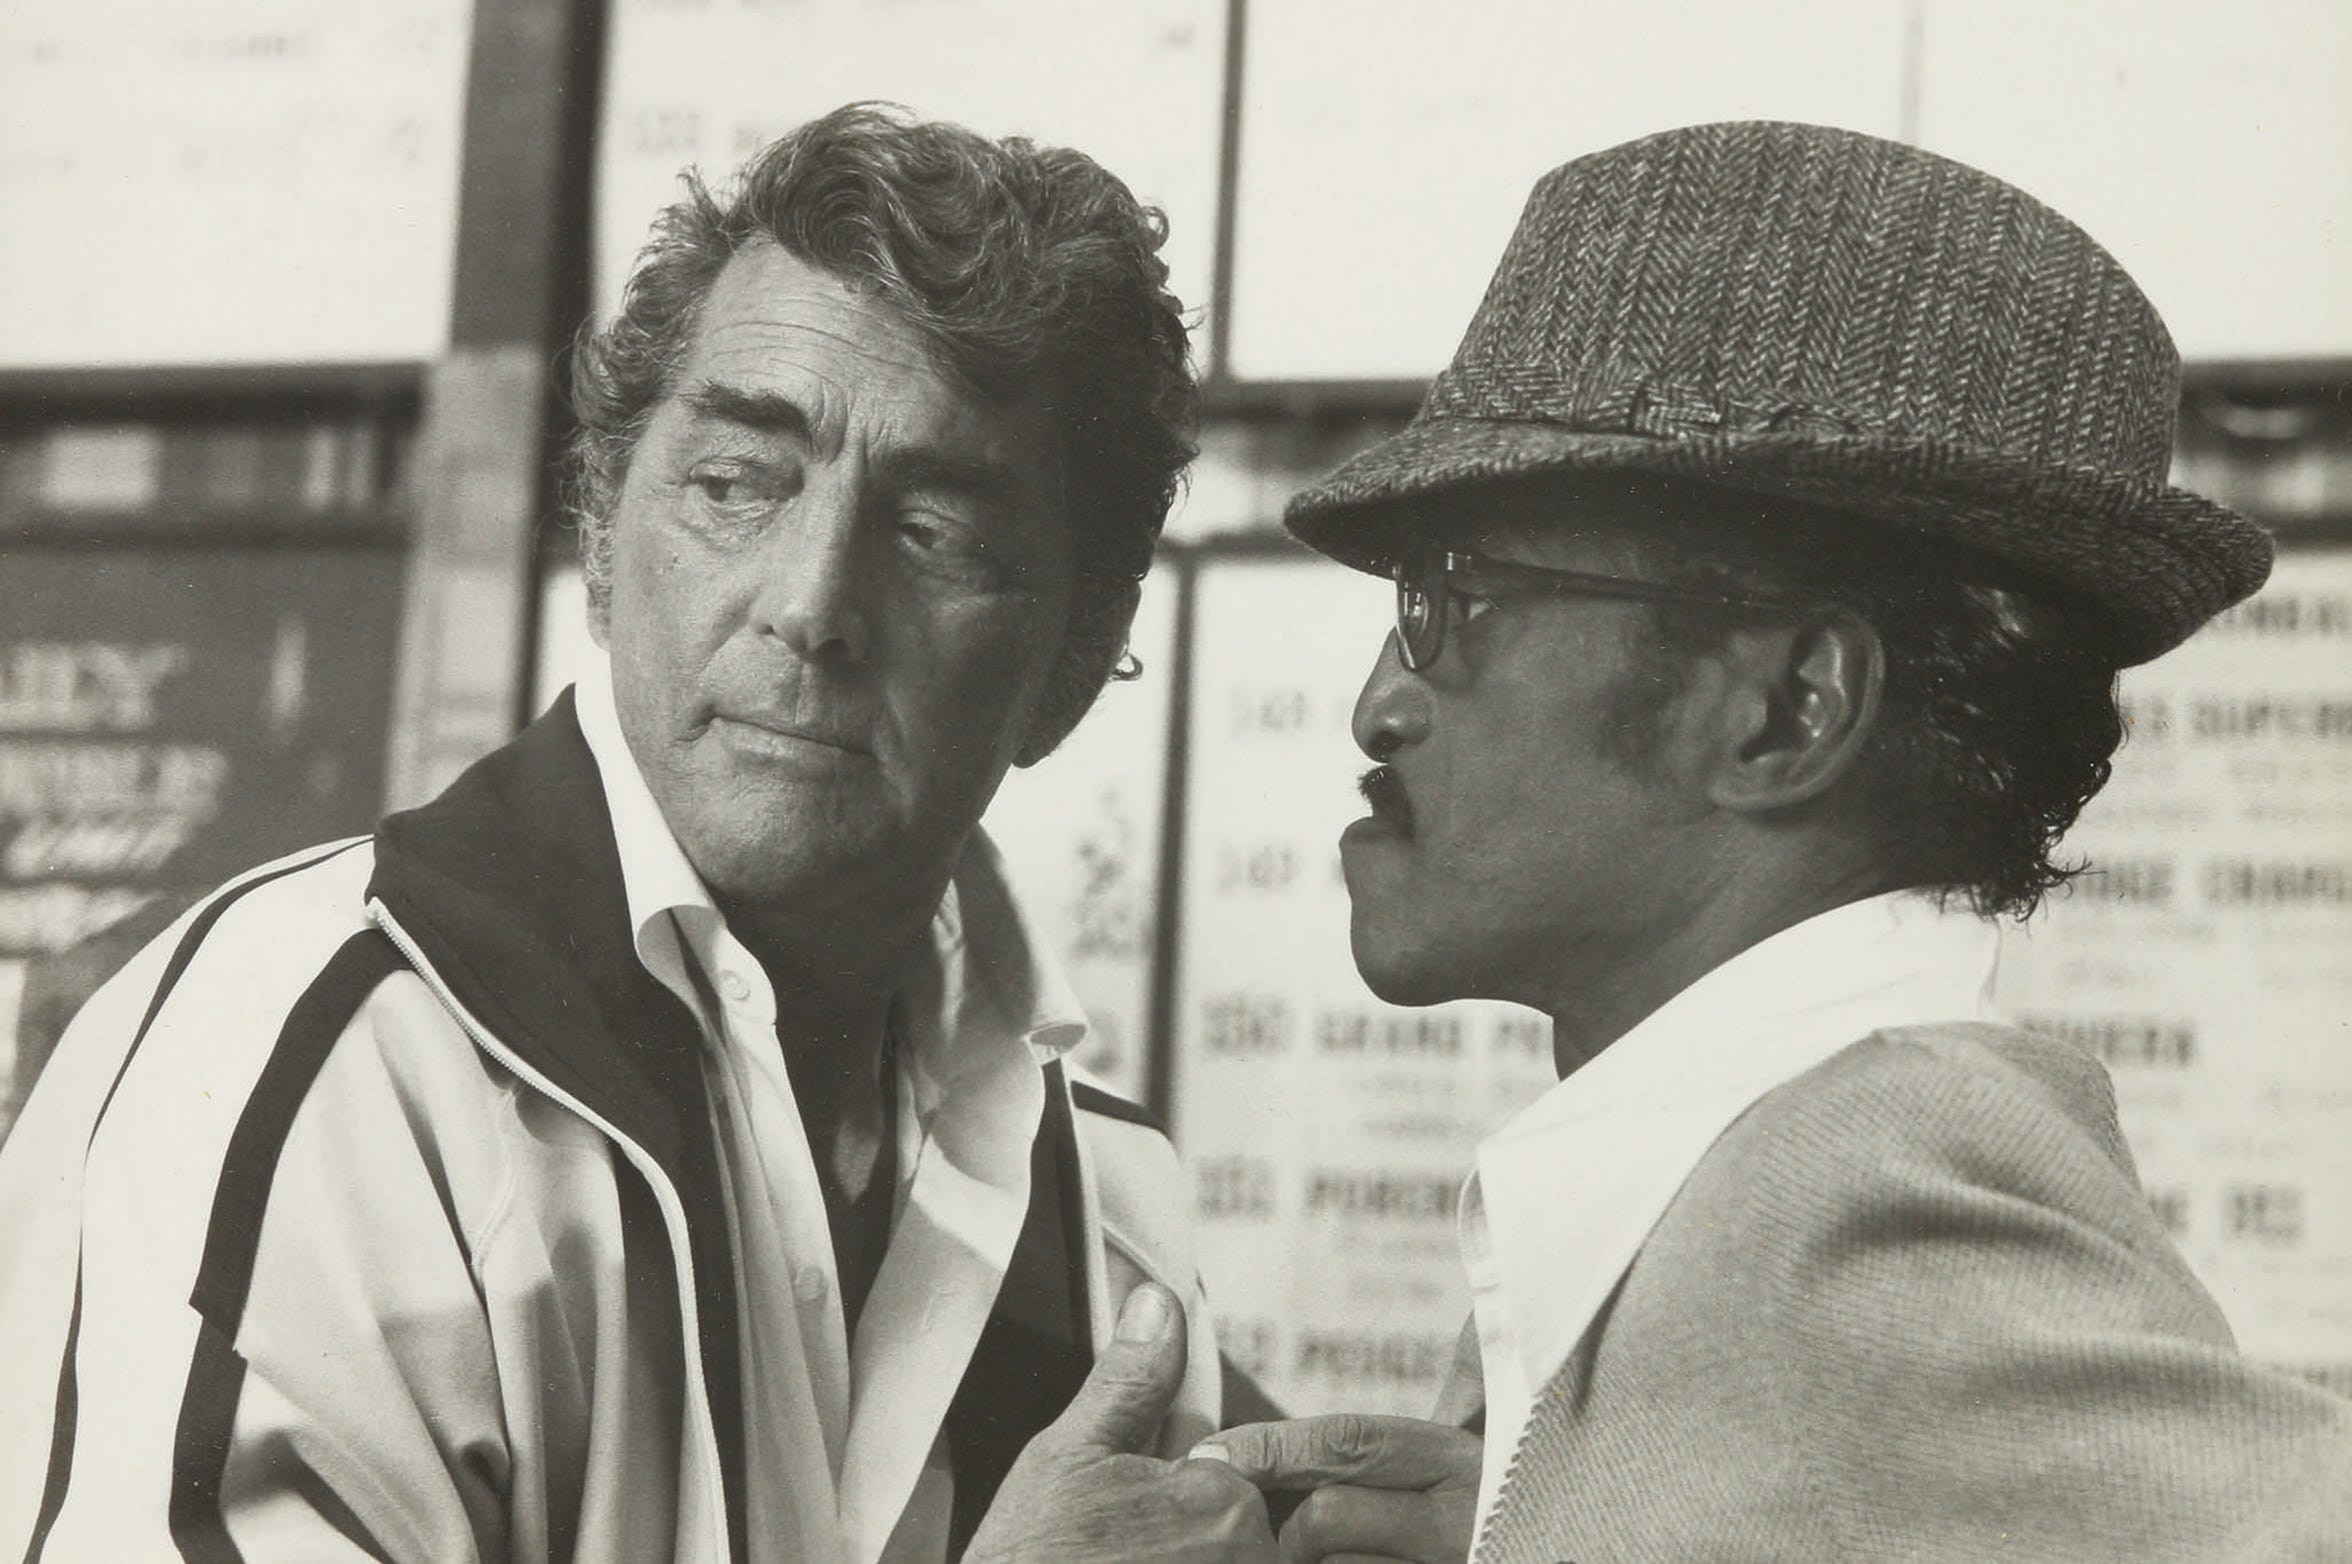 Photograph of Dean Martin and Sammy Davis Jr.